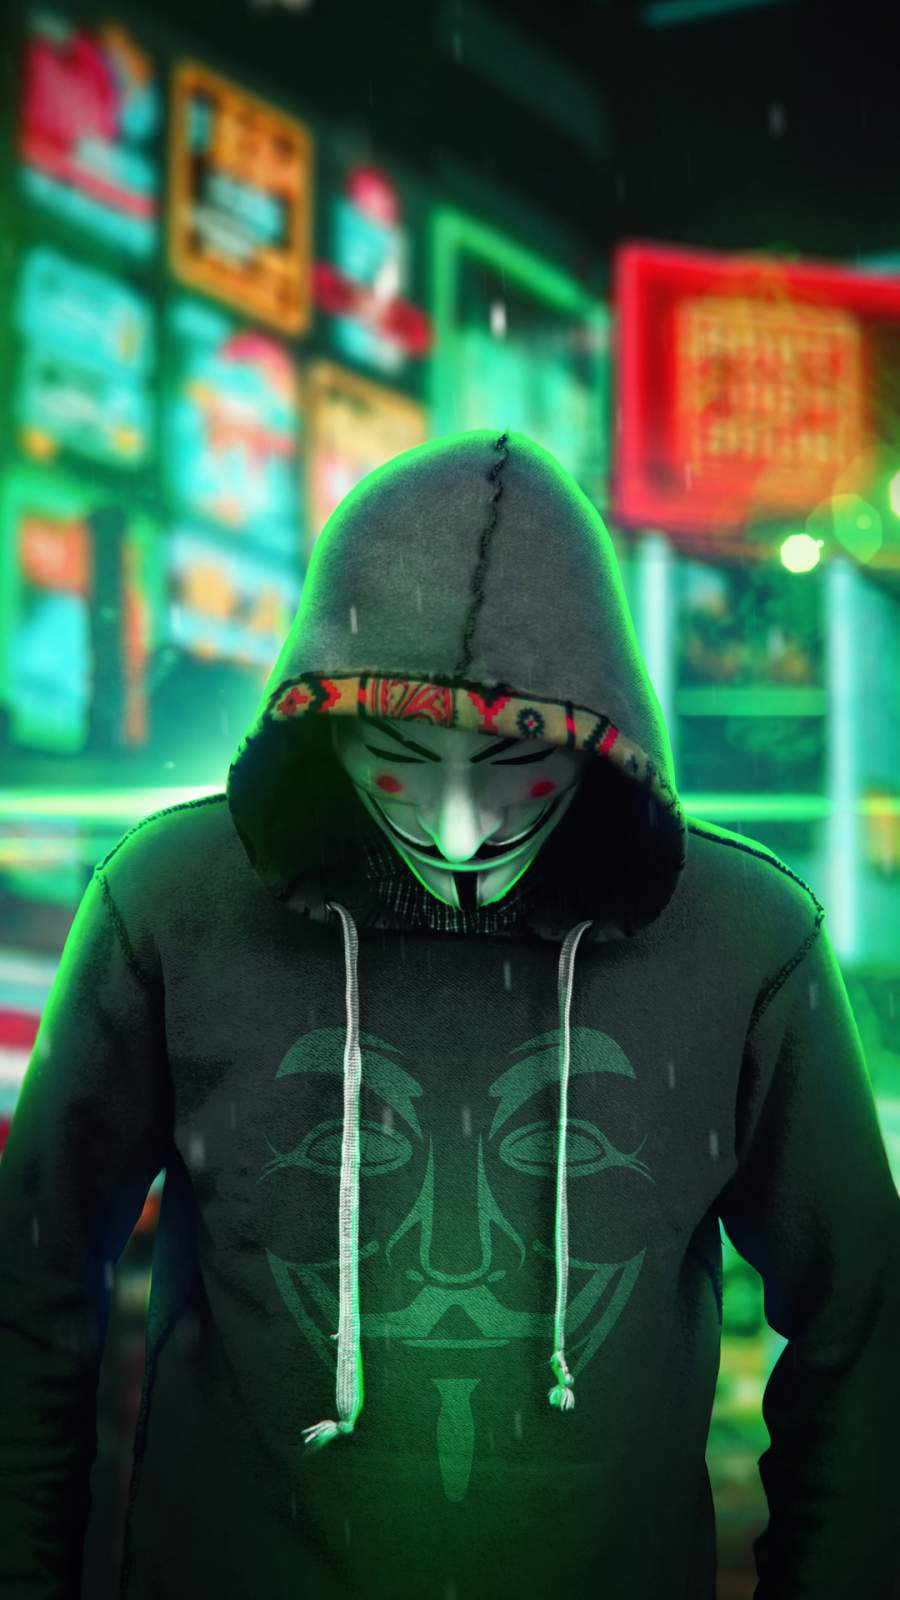 Anonymus Man Hoodie iPhone Wallpaper